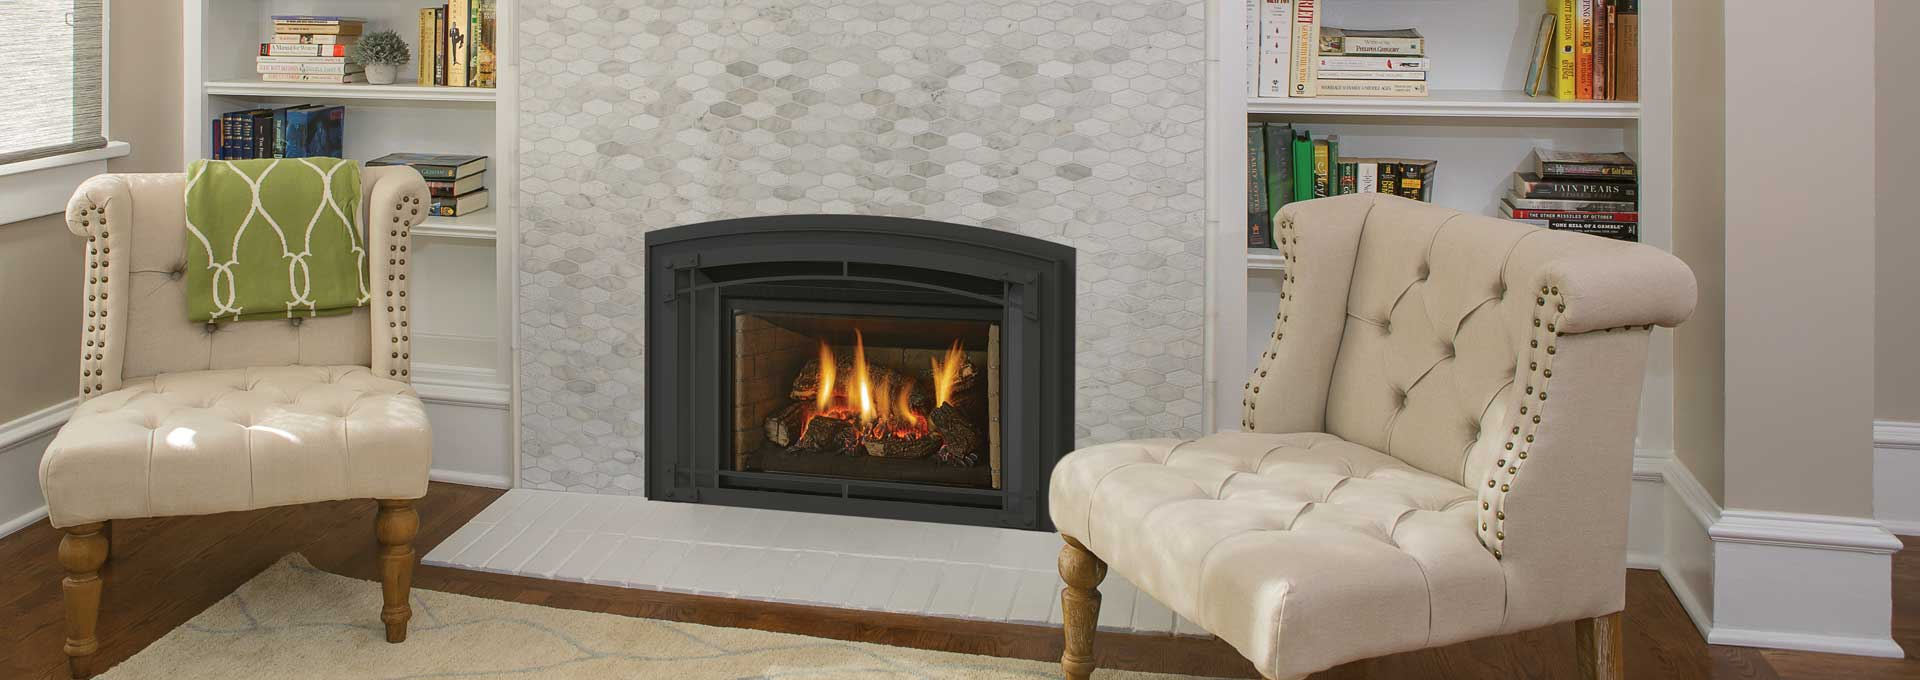 How To Operate A Fireplace Being Prepared For Power Outages A Guide To Staying Comfortable